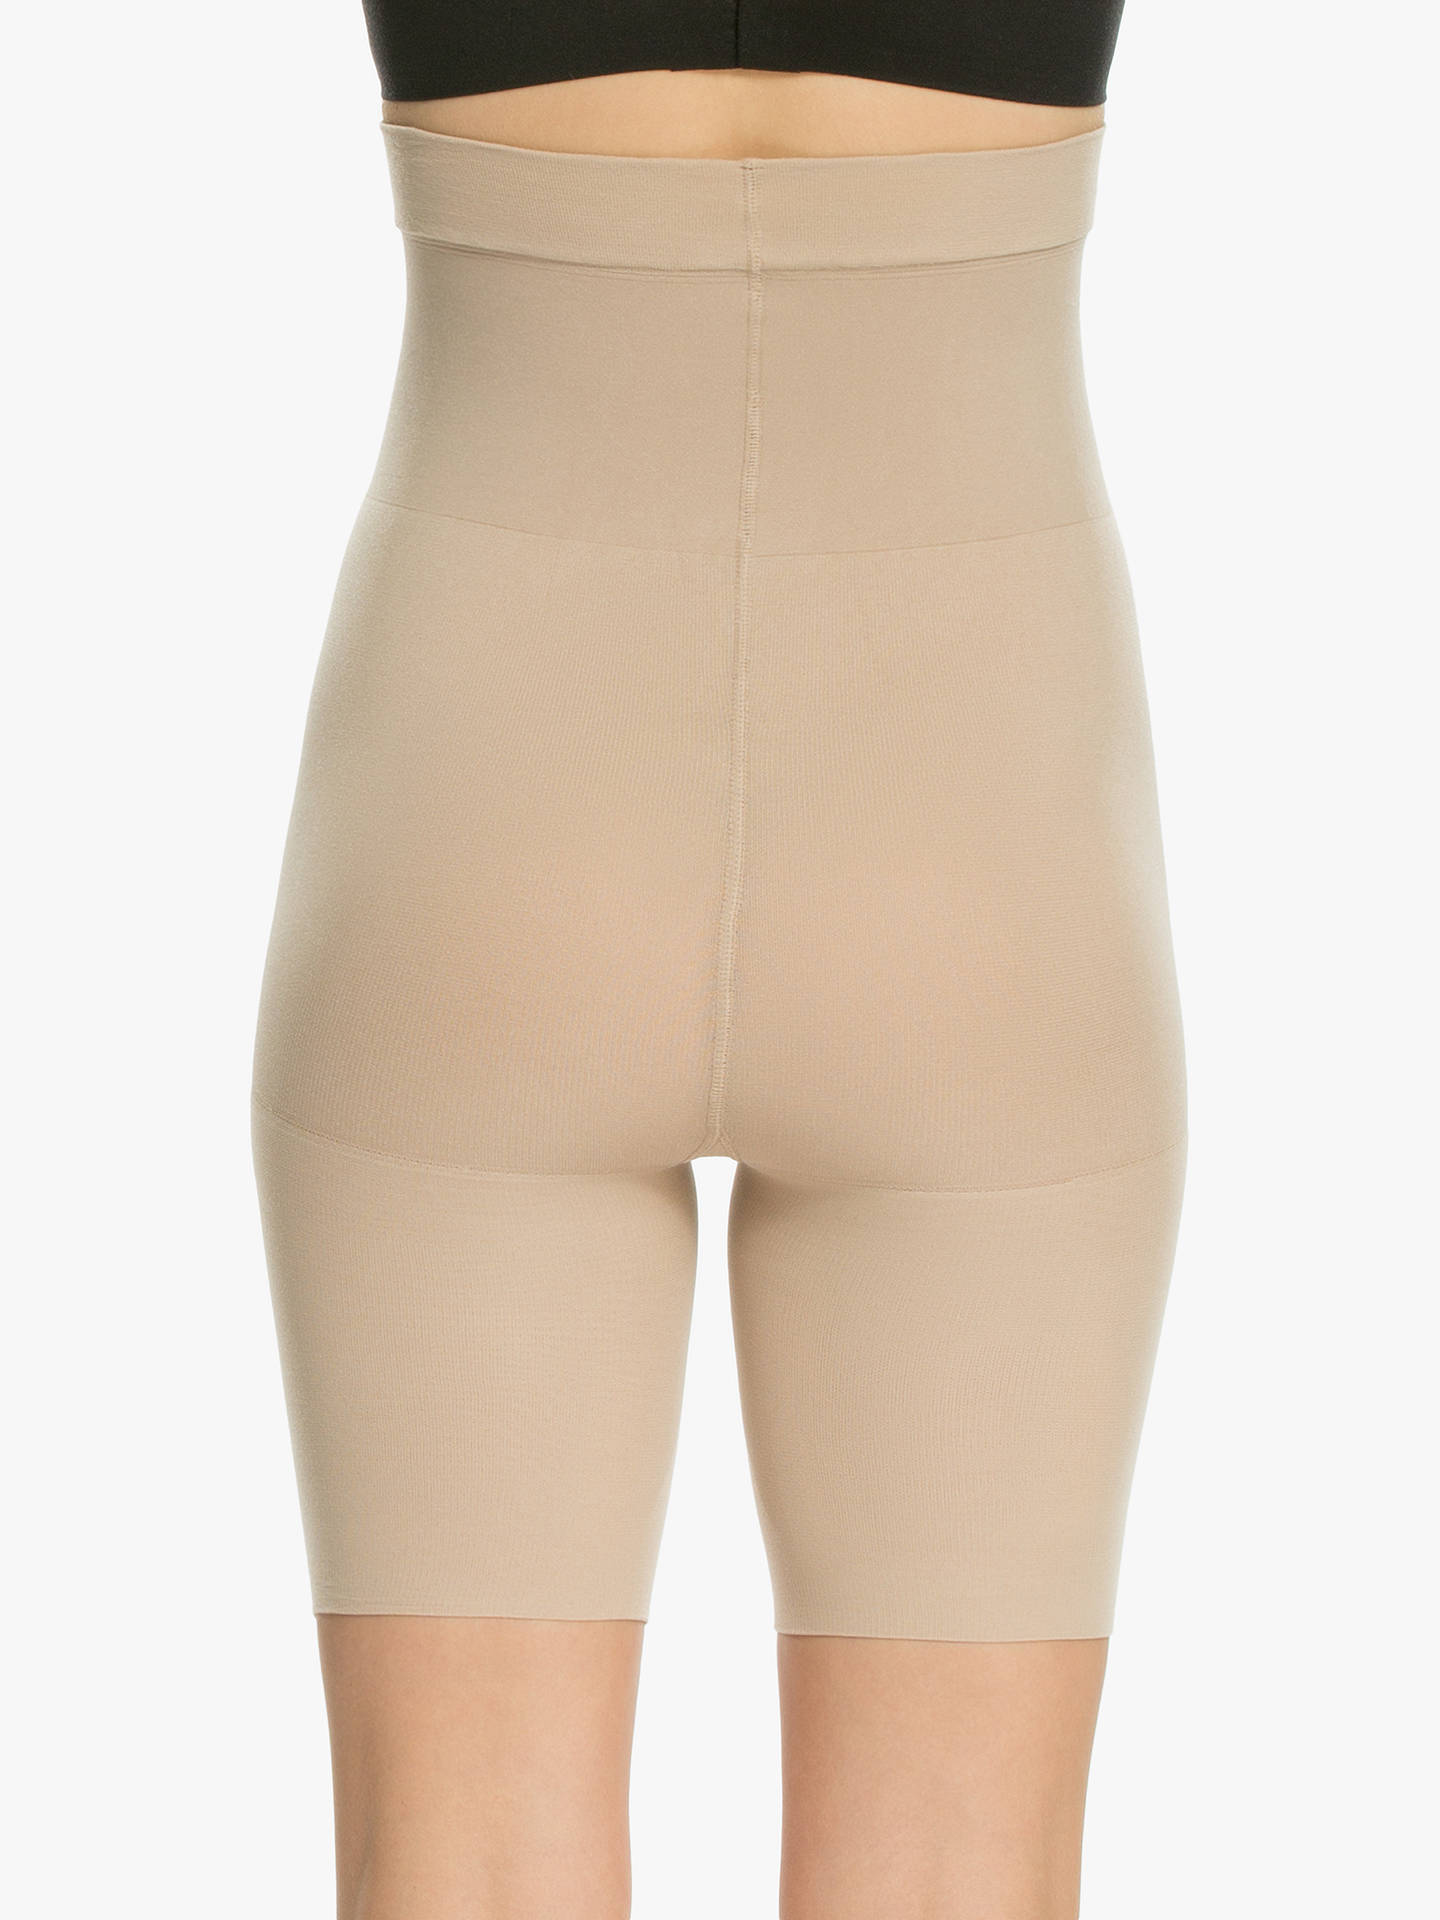 b234682505a ... Buy Spanx Power Mama Maternity Mid-Thigh Shaper Shorts